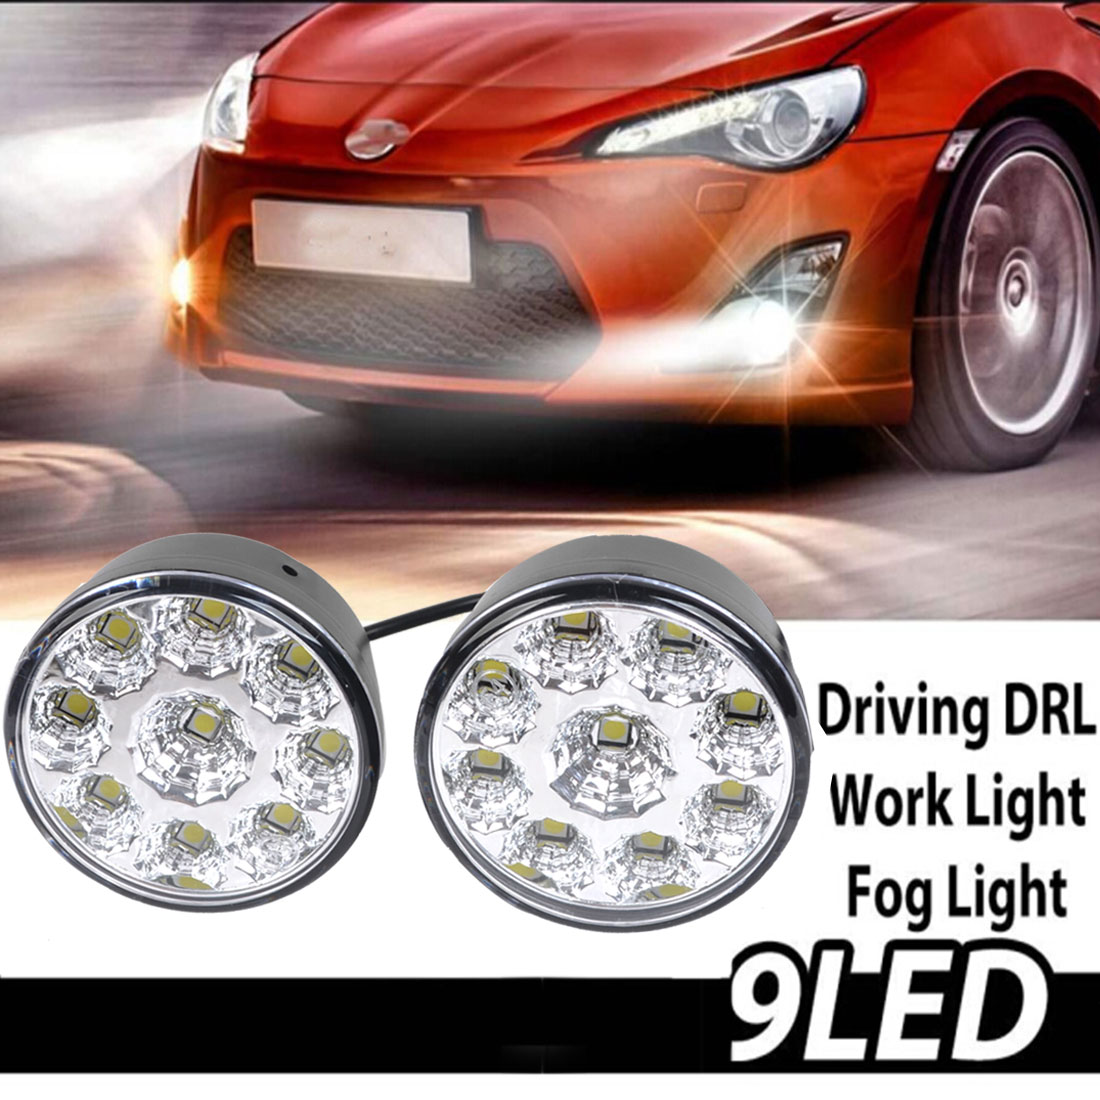 2 Pcs/lot 9 LED Round Daytime Driving Running Light DRL Car Fog Lamp Headlight White Discount 50 Size 70 x 45mm(H*D)(China (Mainland))